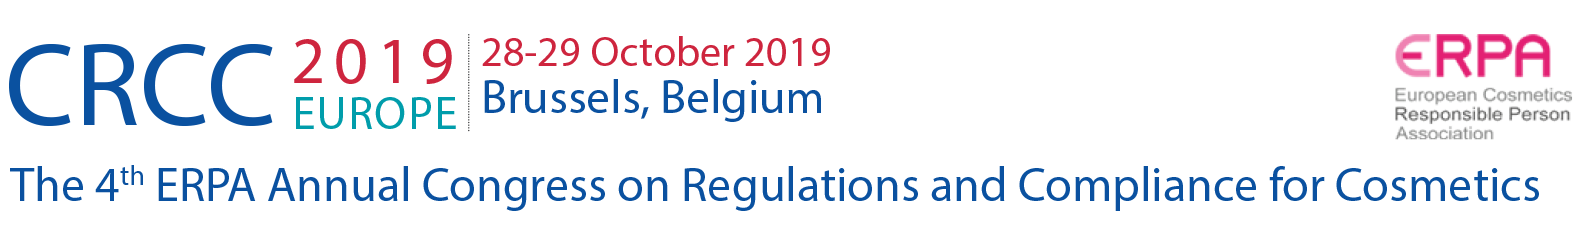 The 3rd International Congress on European Regulations and Compliance for Cosmetics (CRCC2018)